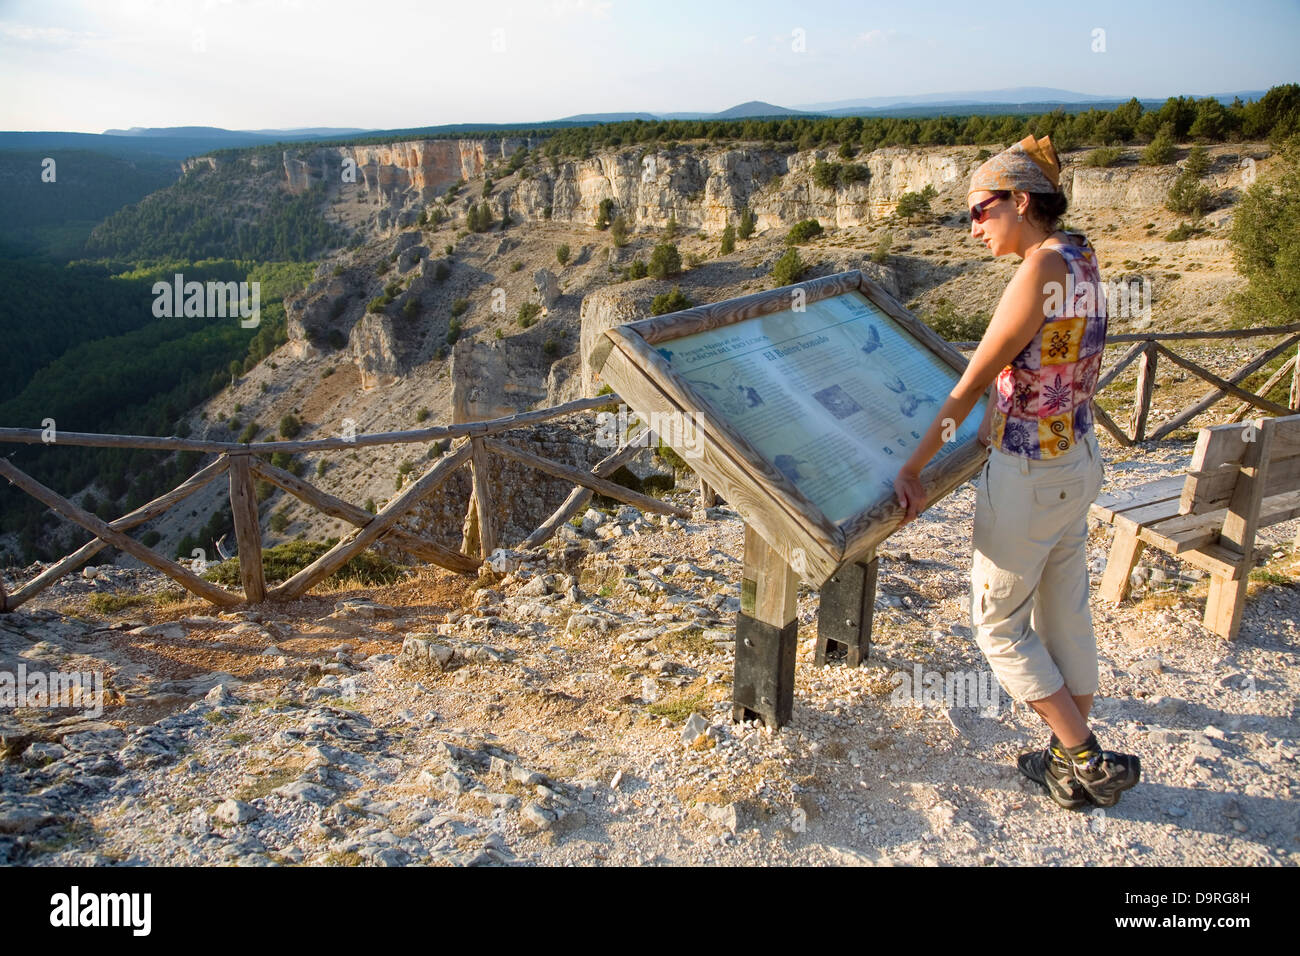 Woman in 'La Galiana' viewpoint. Cañon del Rio Lobos Natural Park . Soria province, Castile and Leon, - Stock Image